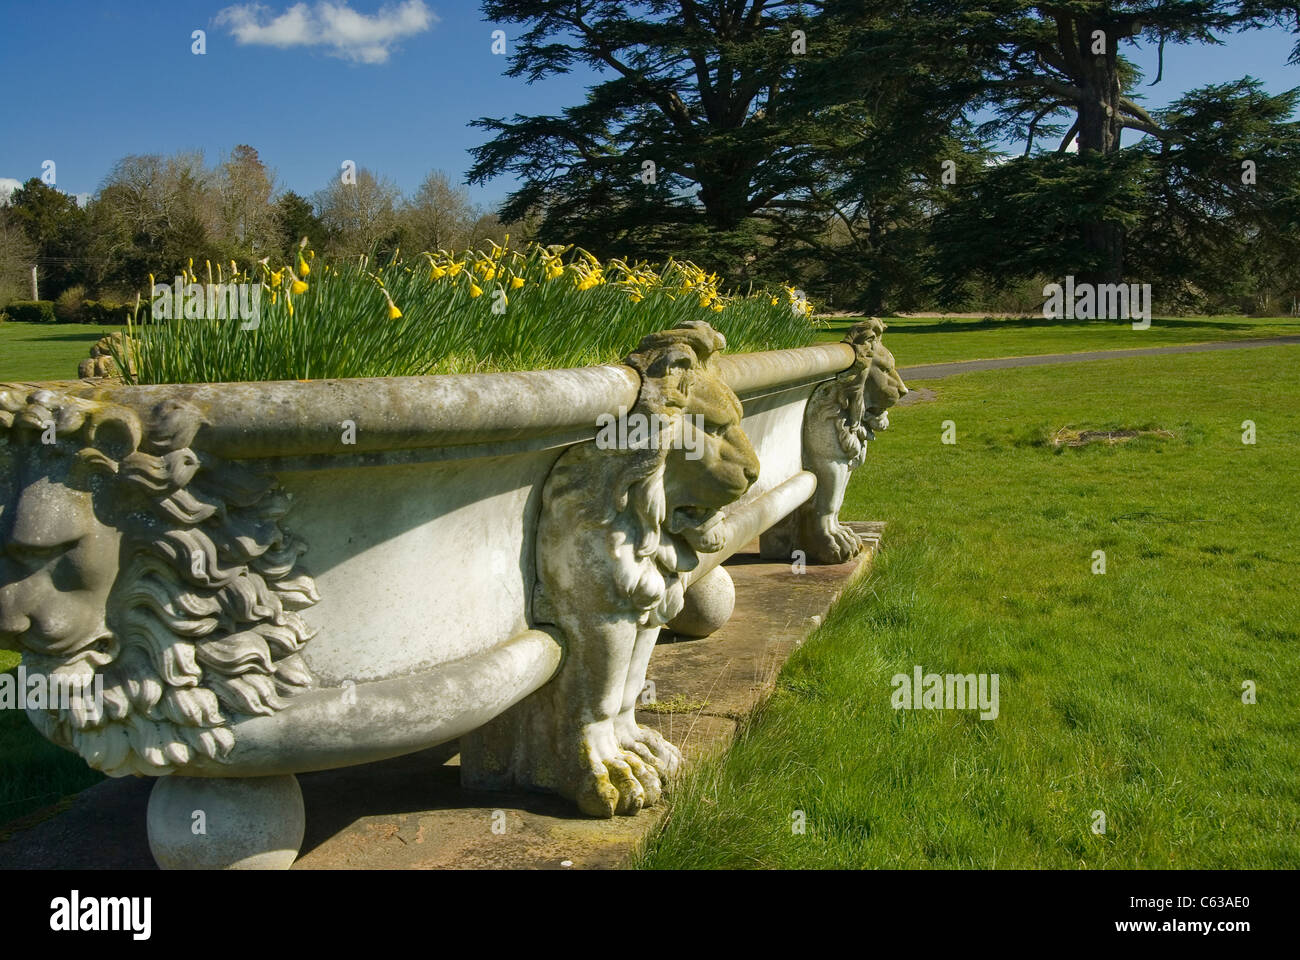 Large ornamental garden trough filled with daffodils at old renaissance period house in berkshire, england near Stock Photo